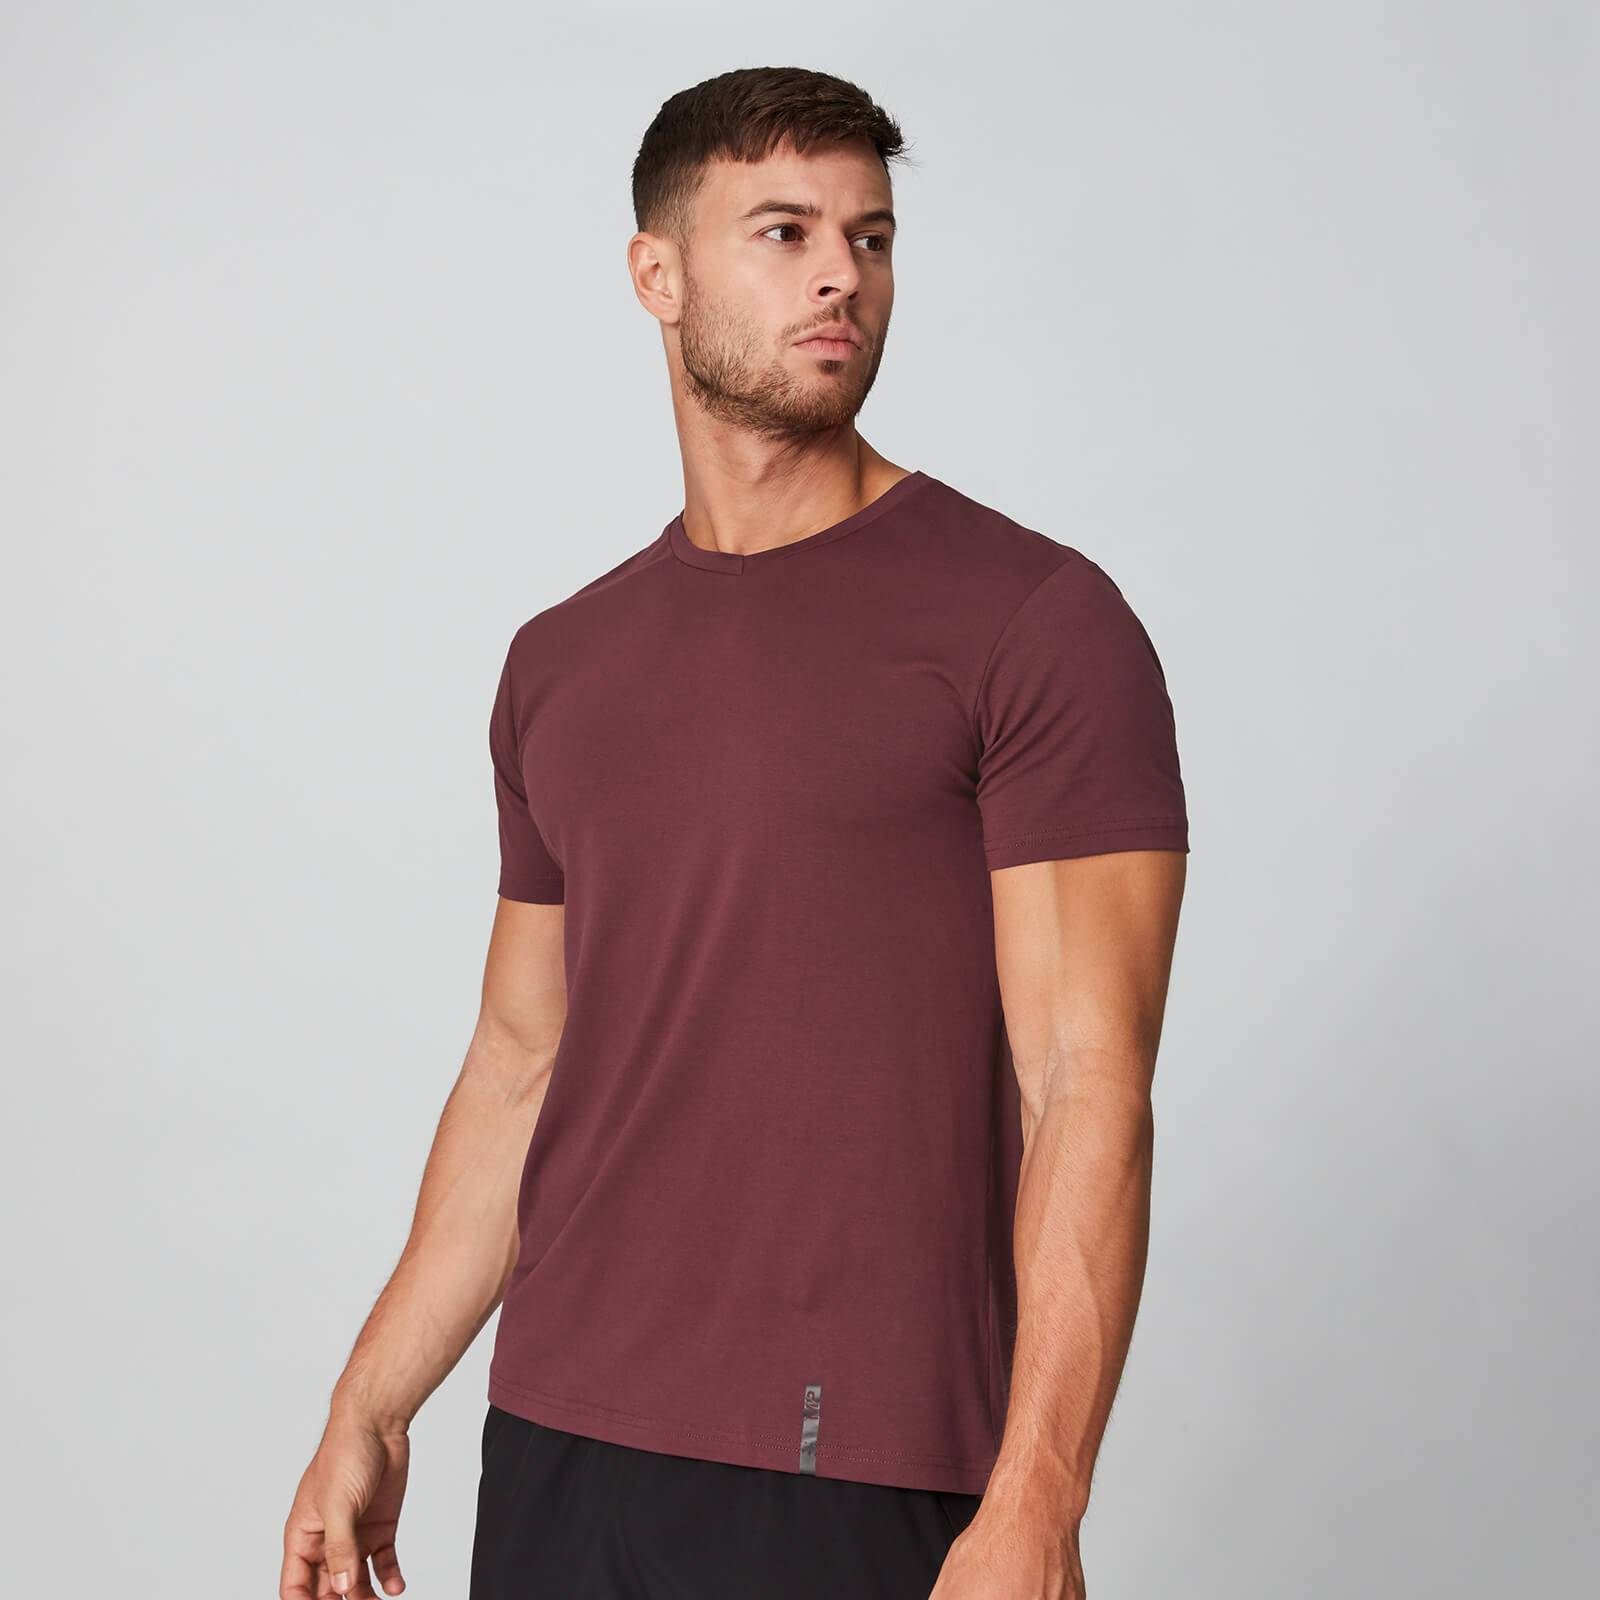 Myprotein Luxe Classic V-Neck T-Shirt - Oxblood - S